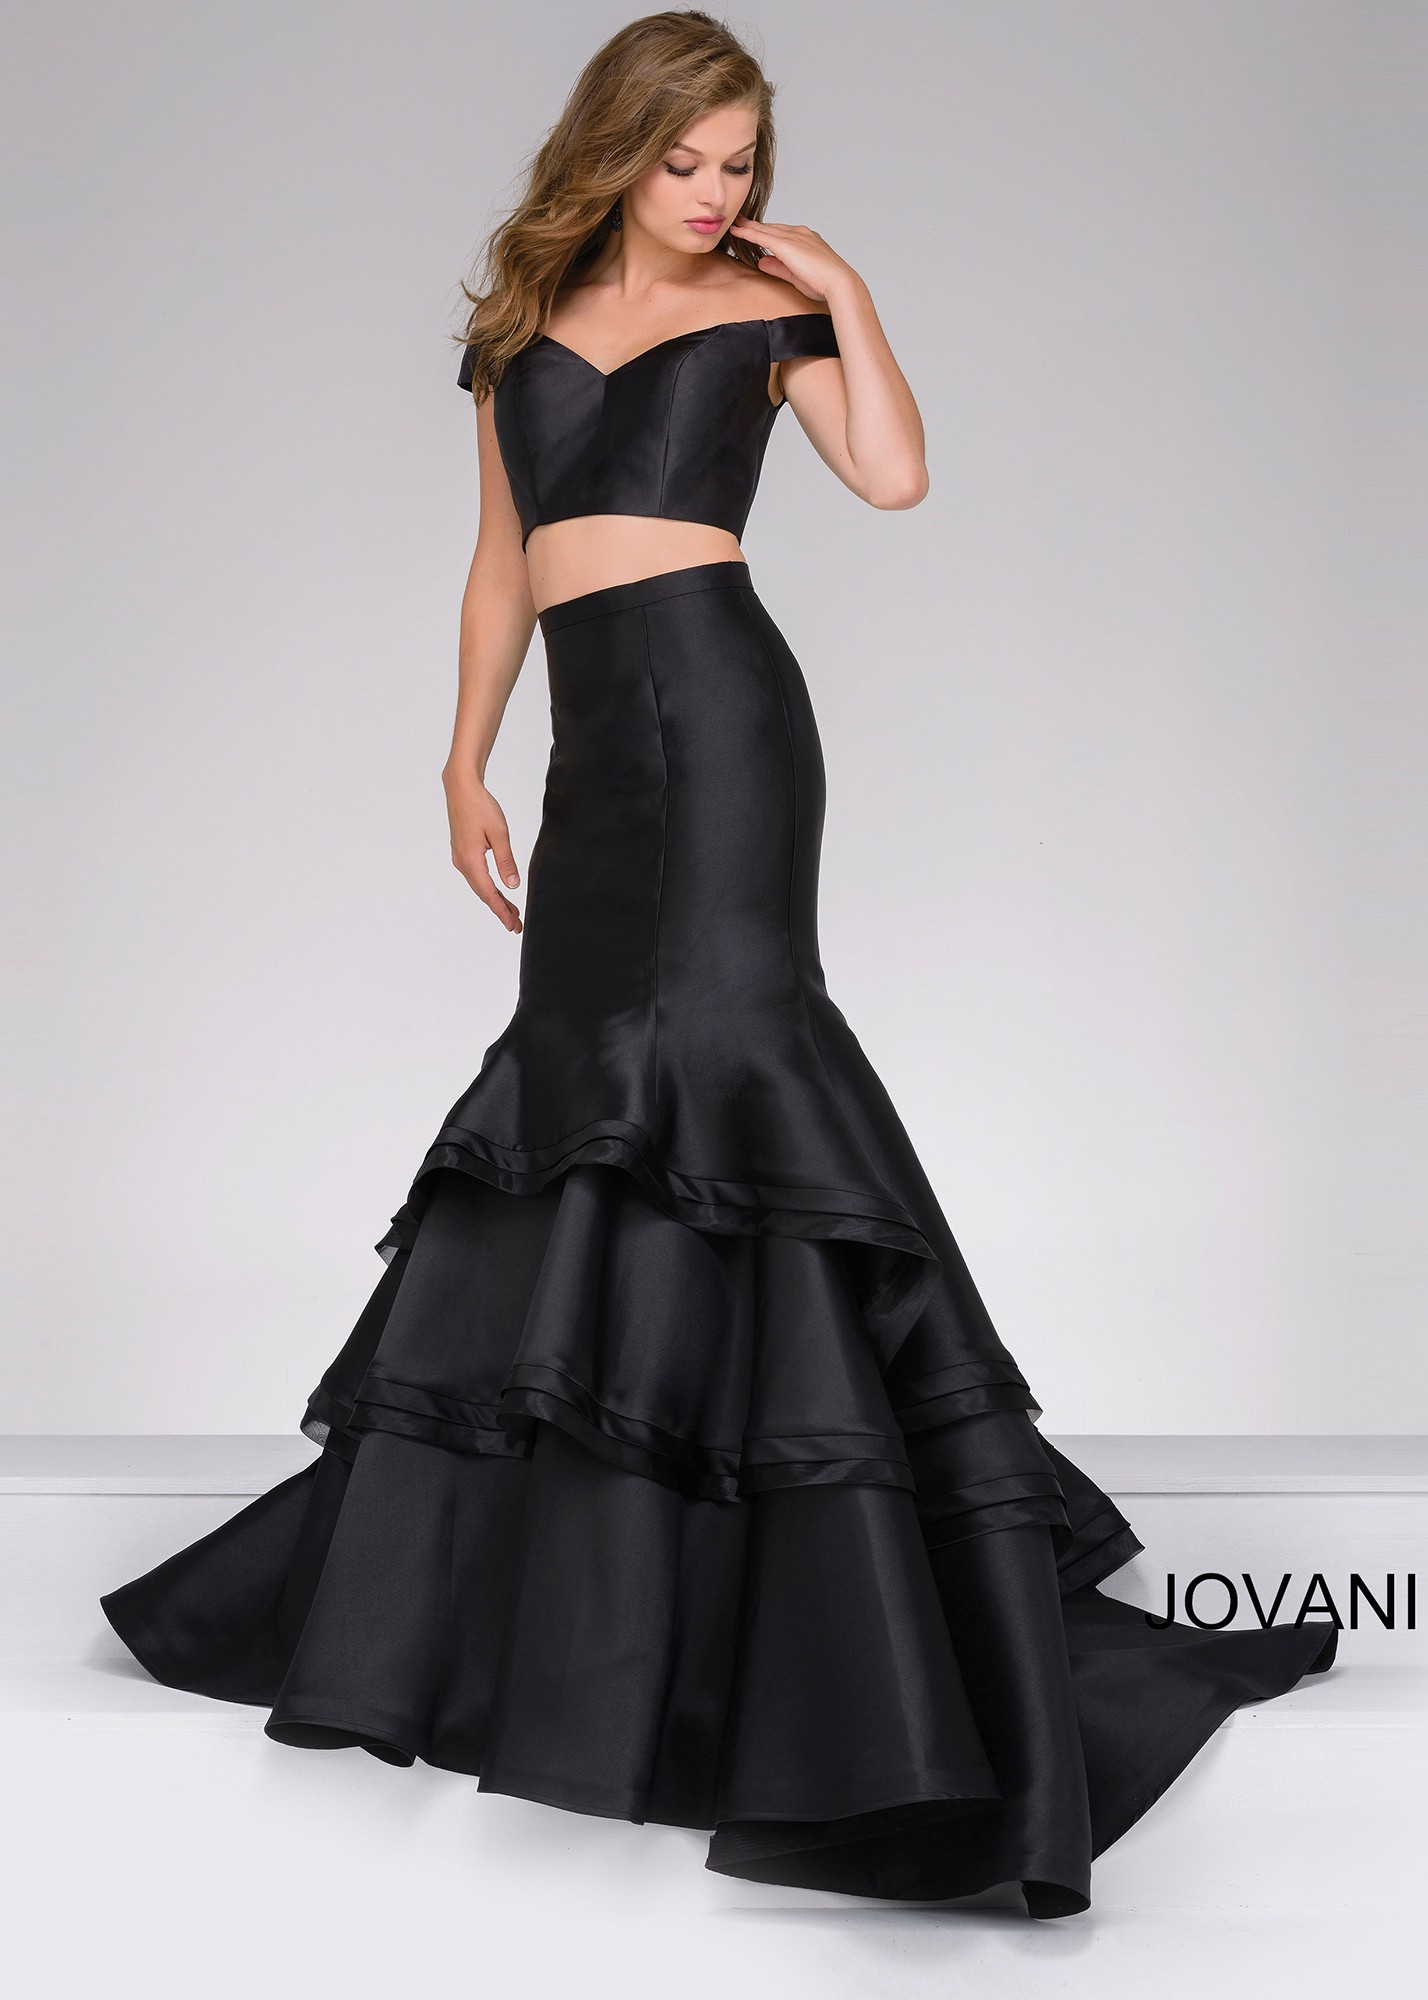 bc2b41ff4e4be Jovani 46866 Off the Shoulder Two Piece Mermaid Dress | RissyRoos.com